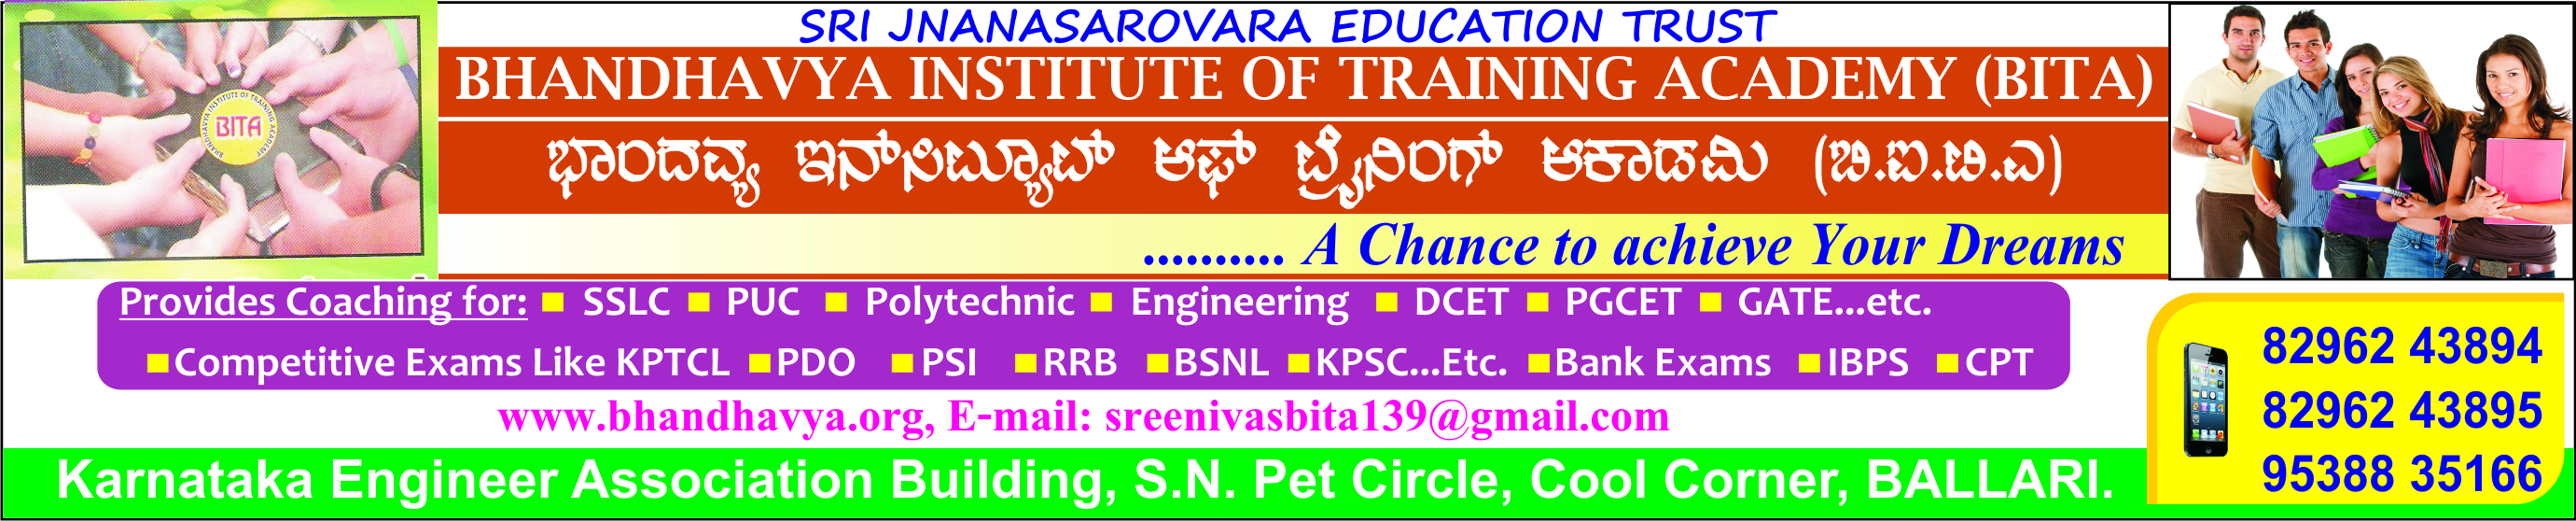 BHANDHAVYA INSTITUTE OF TRAINING ACADEMY (BITA)